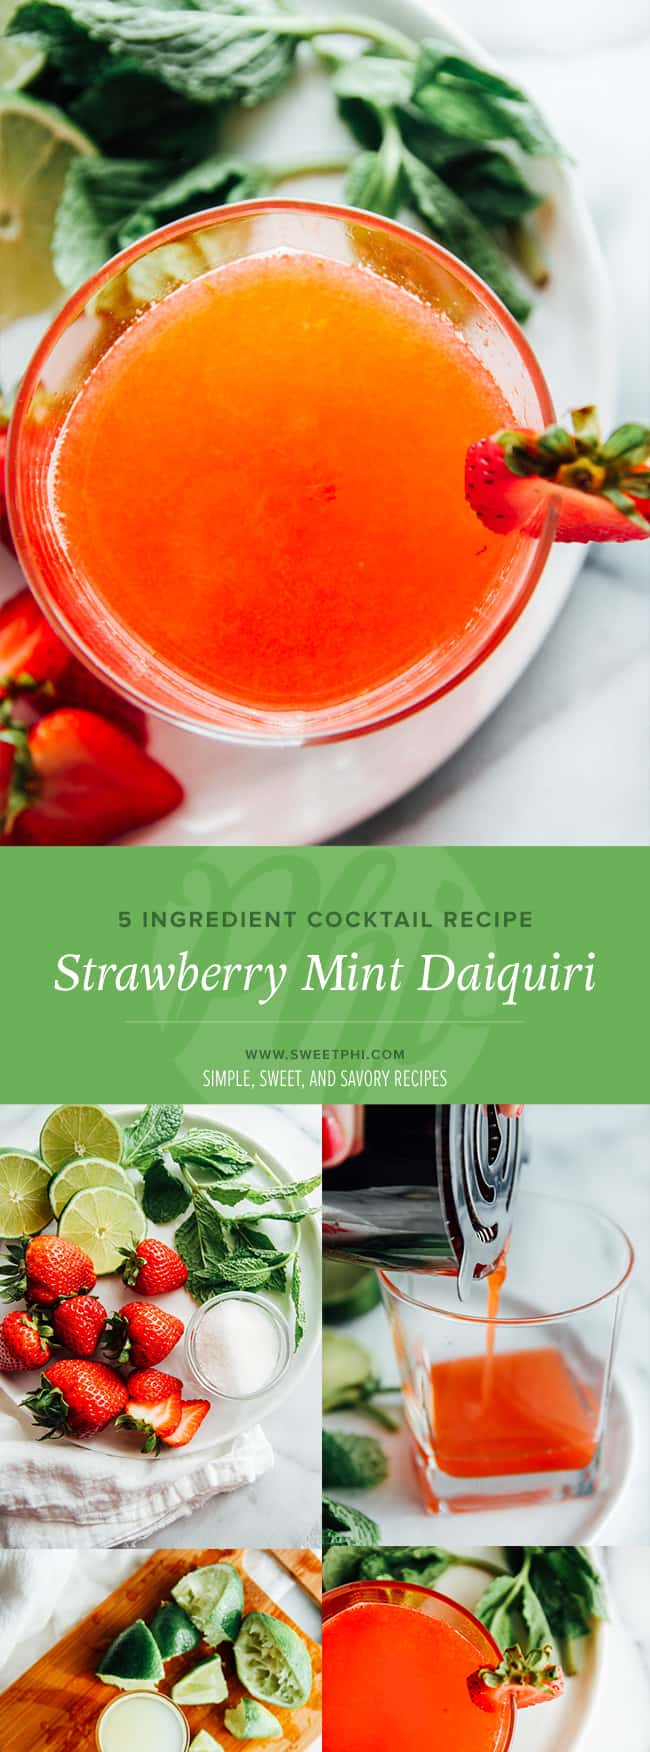 5 ingredient strawberry mint daiquiri cocktail recipe - can easily be made into a delicious mocktail recipe from @sweetphi